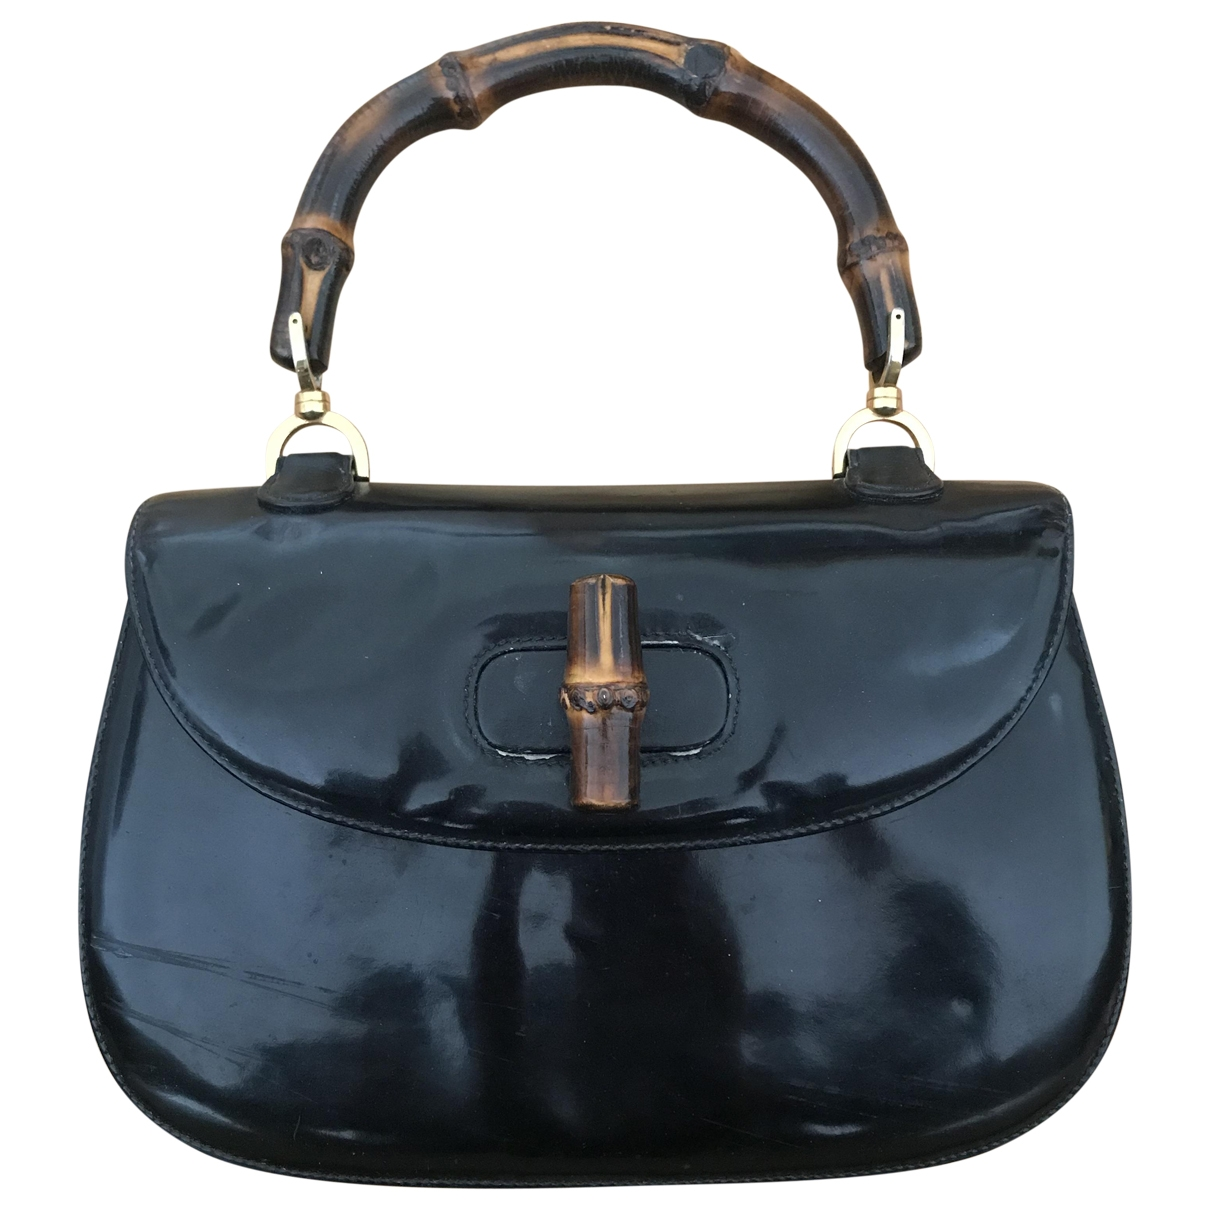 Gucci Bamboo Black Patent leather handbag for Women \N